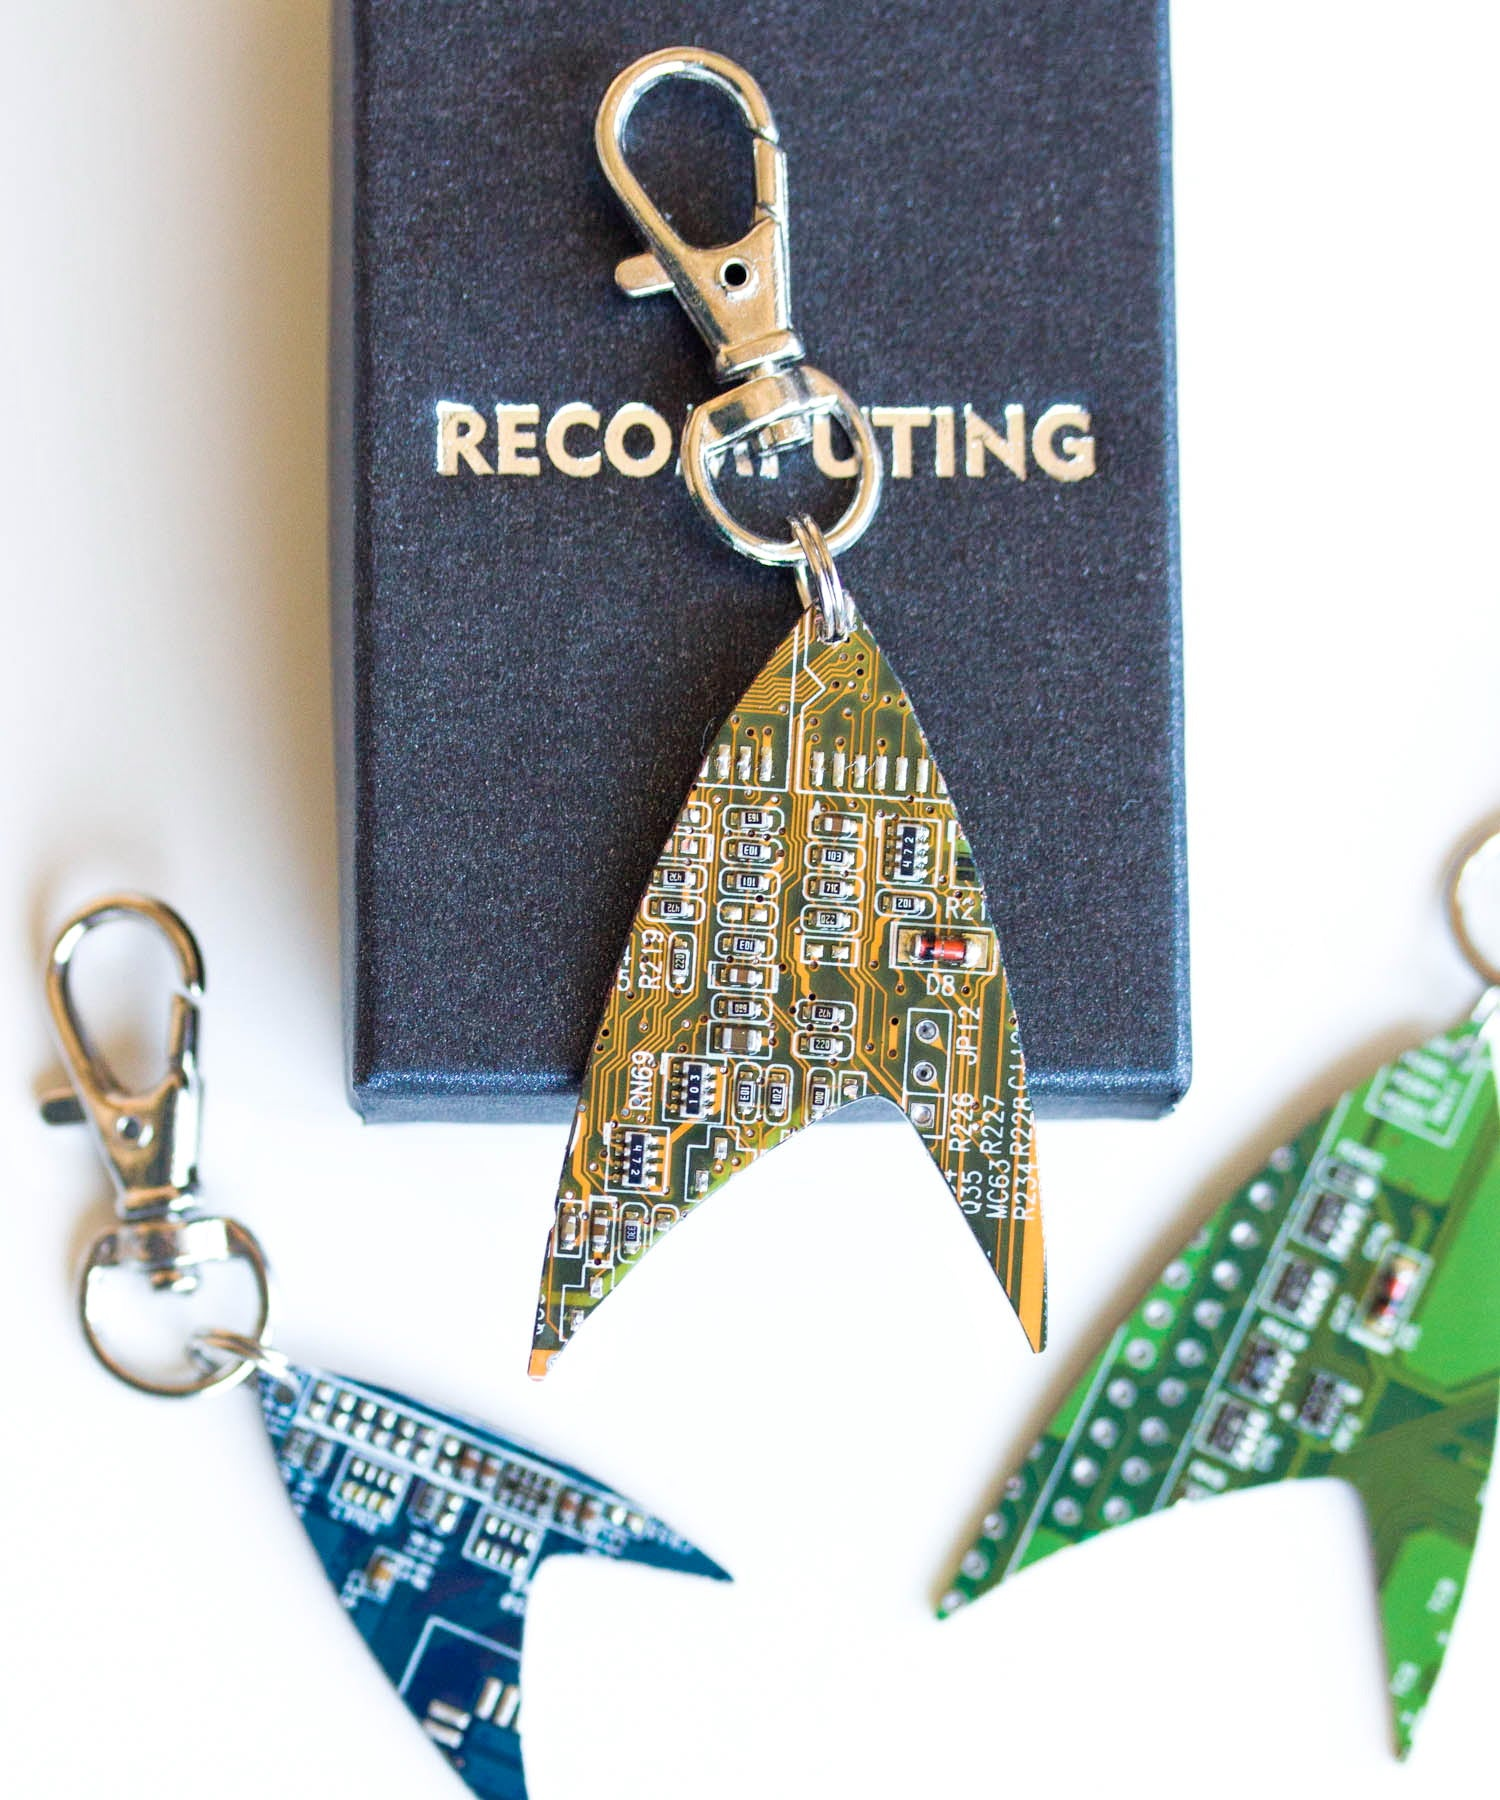 Star inspired keychain, Circuit board keychain or bag tag